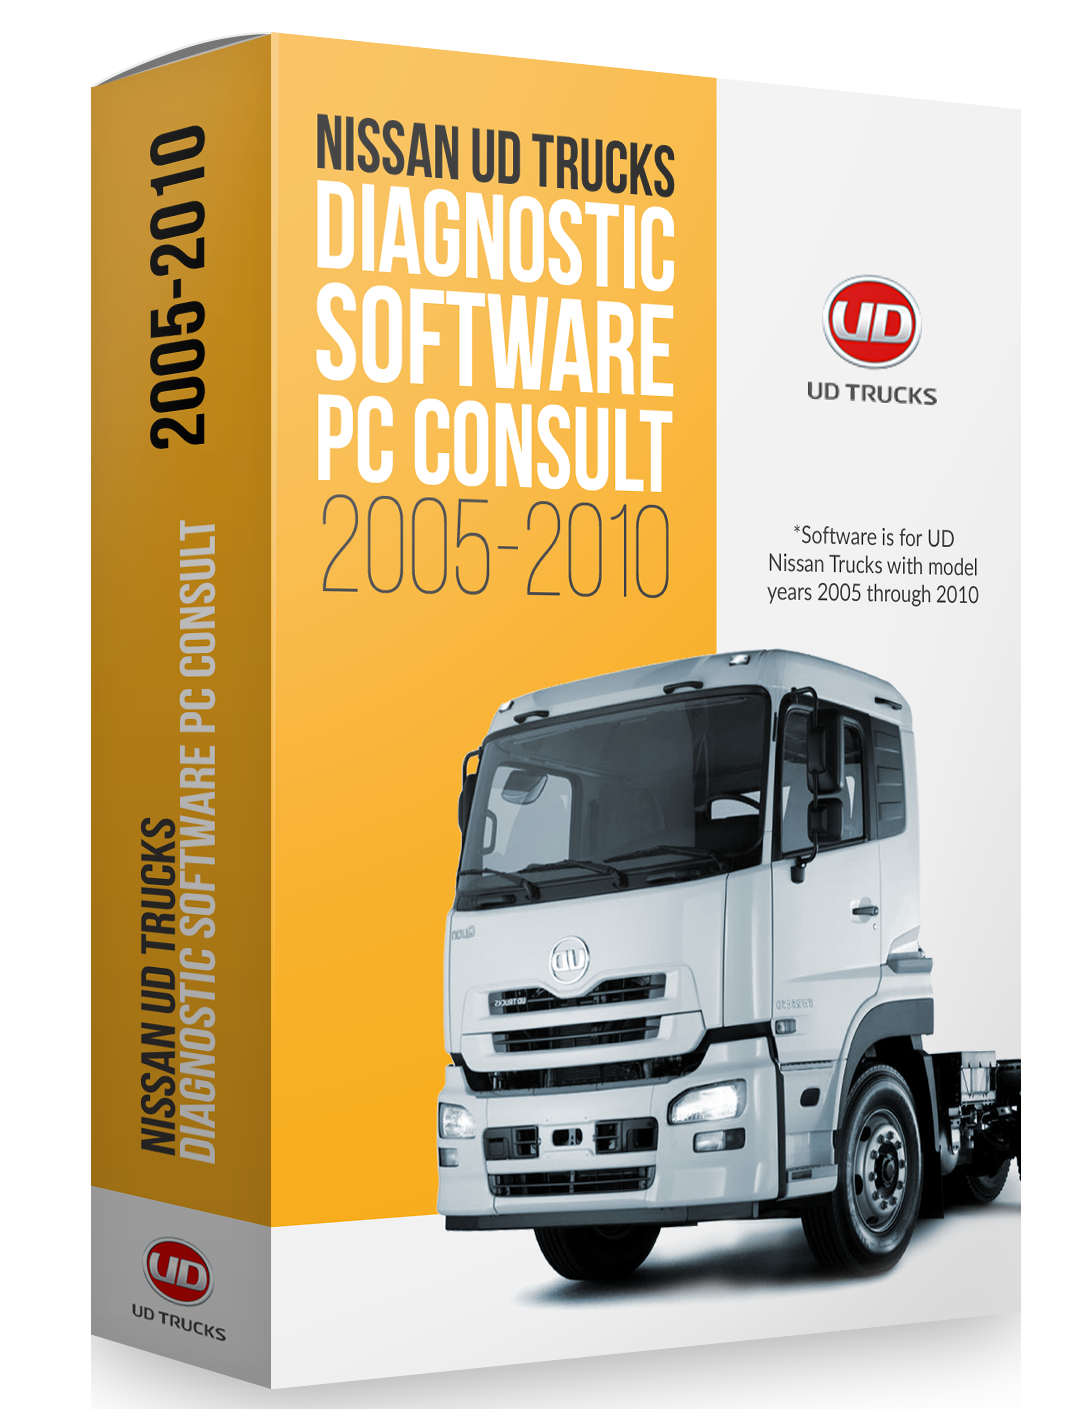 Nissan UD Trucks Diagnostic Software PC Consult (2005-2010)